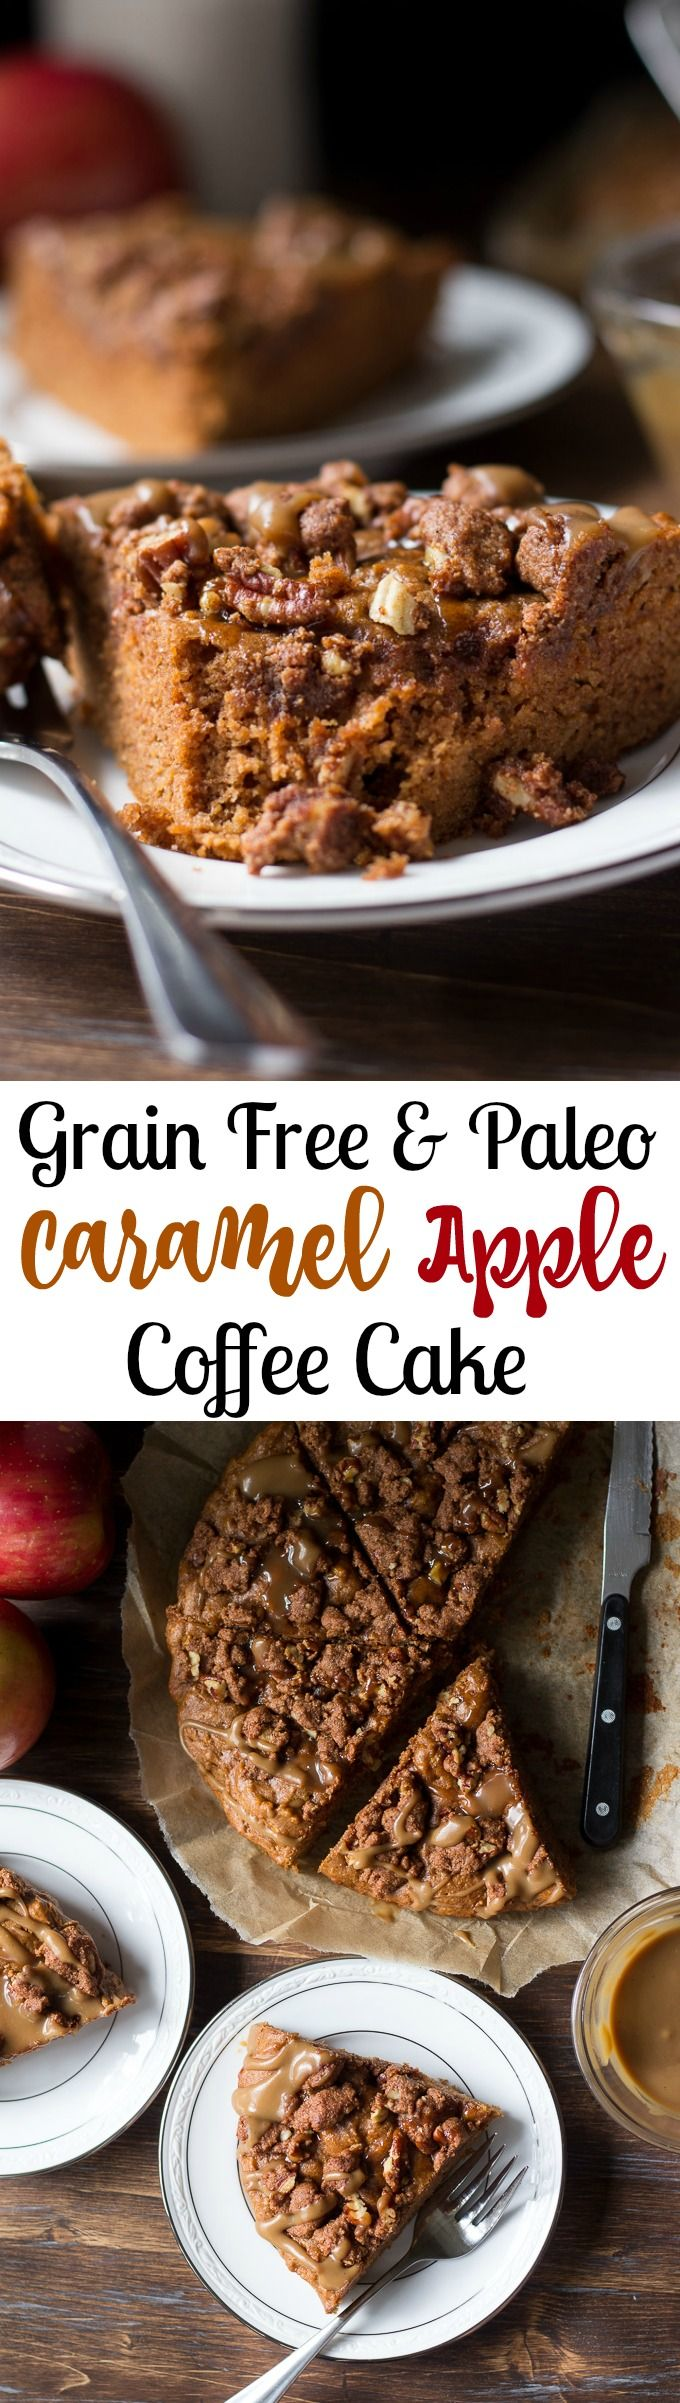 Paleo Caramel Apple Coffee Cake - grain free dairy free yet decadent Paleo coffee cake with cinnamon crumb topping and rich caramel sauce drizzled over the top.